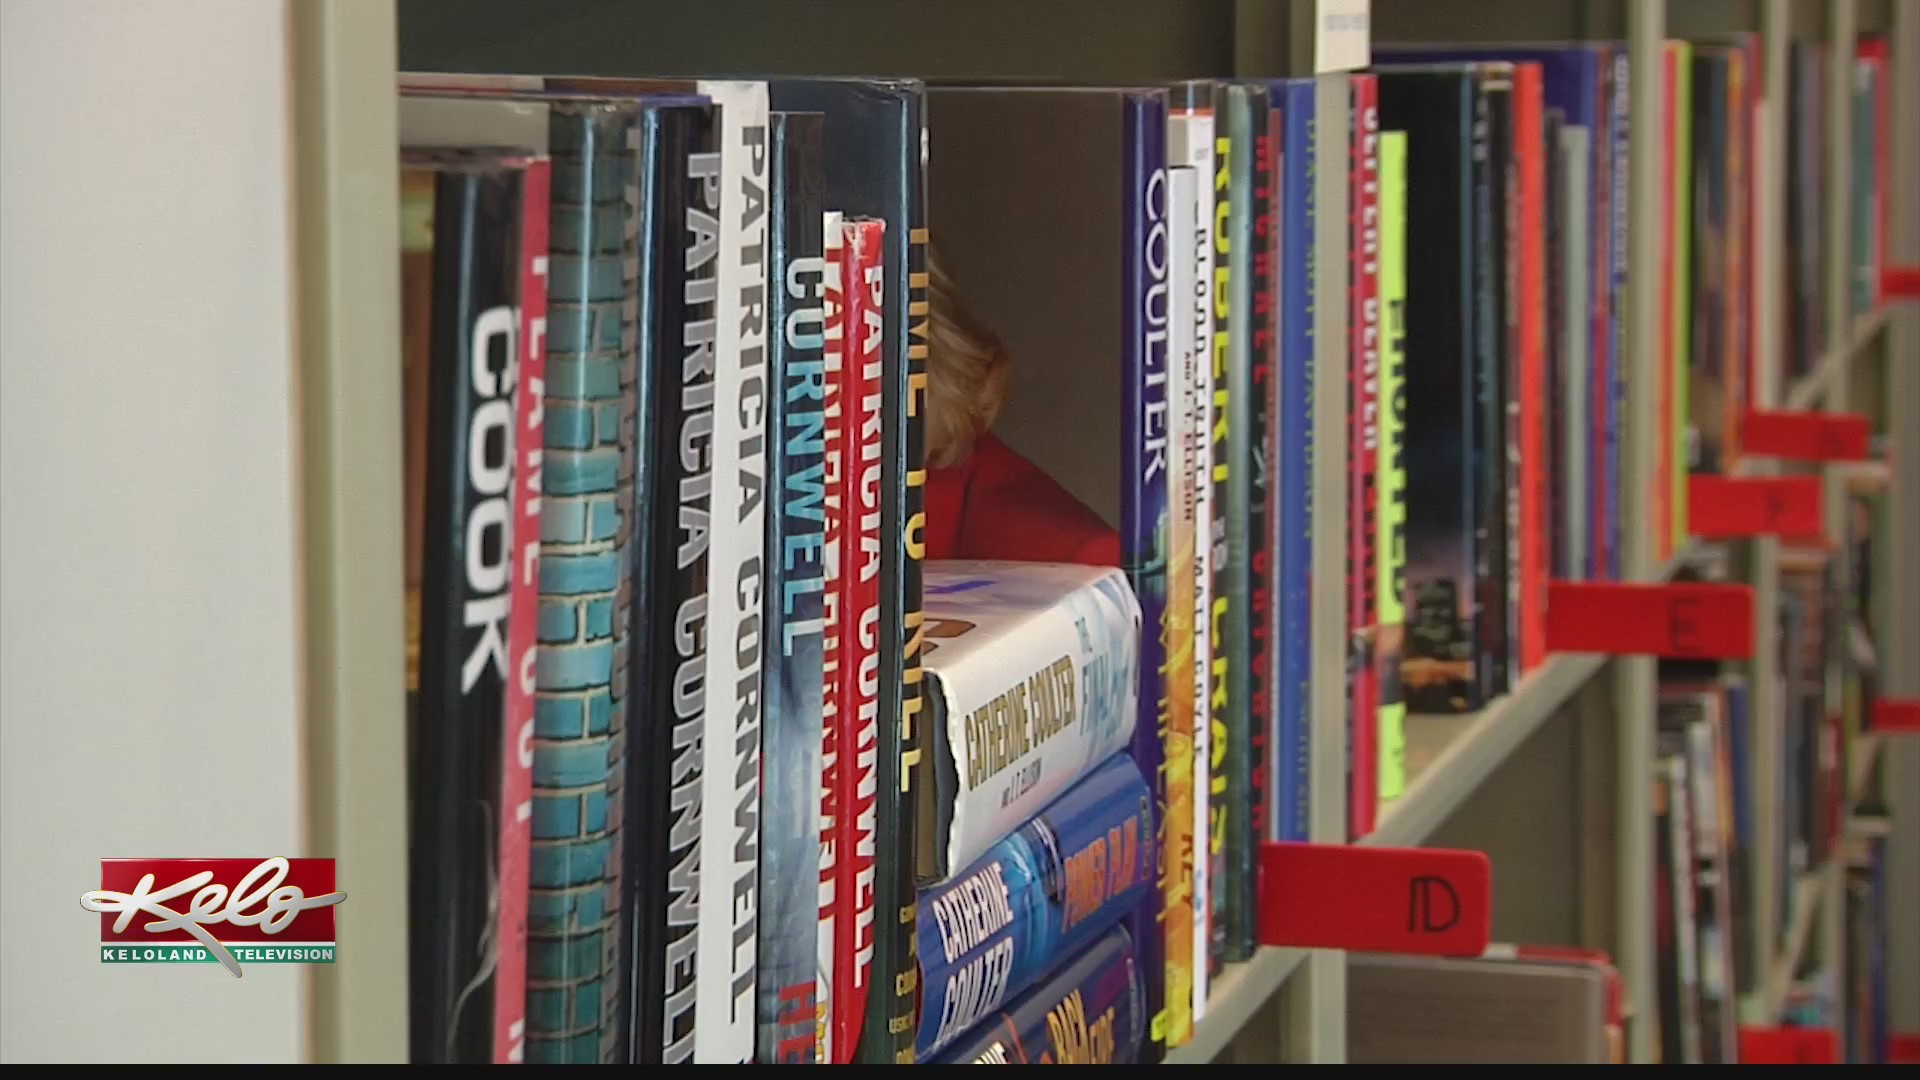 Donating_books_helps_teach_adults_how_to_0_20190613031203